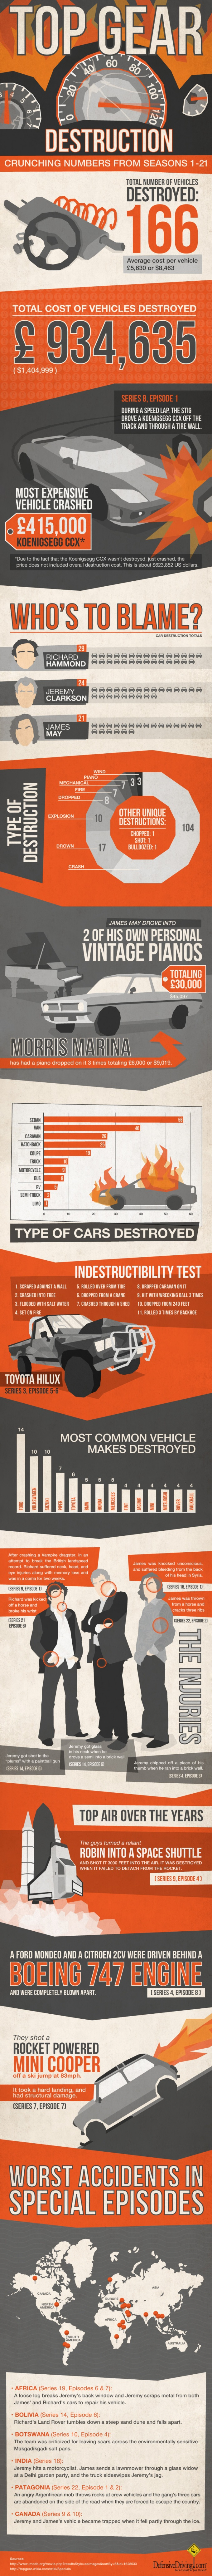 crunching-numbers-a-history-of-top-gear-destruction-infographic